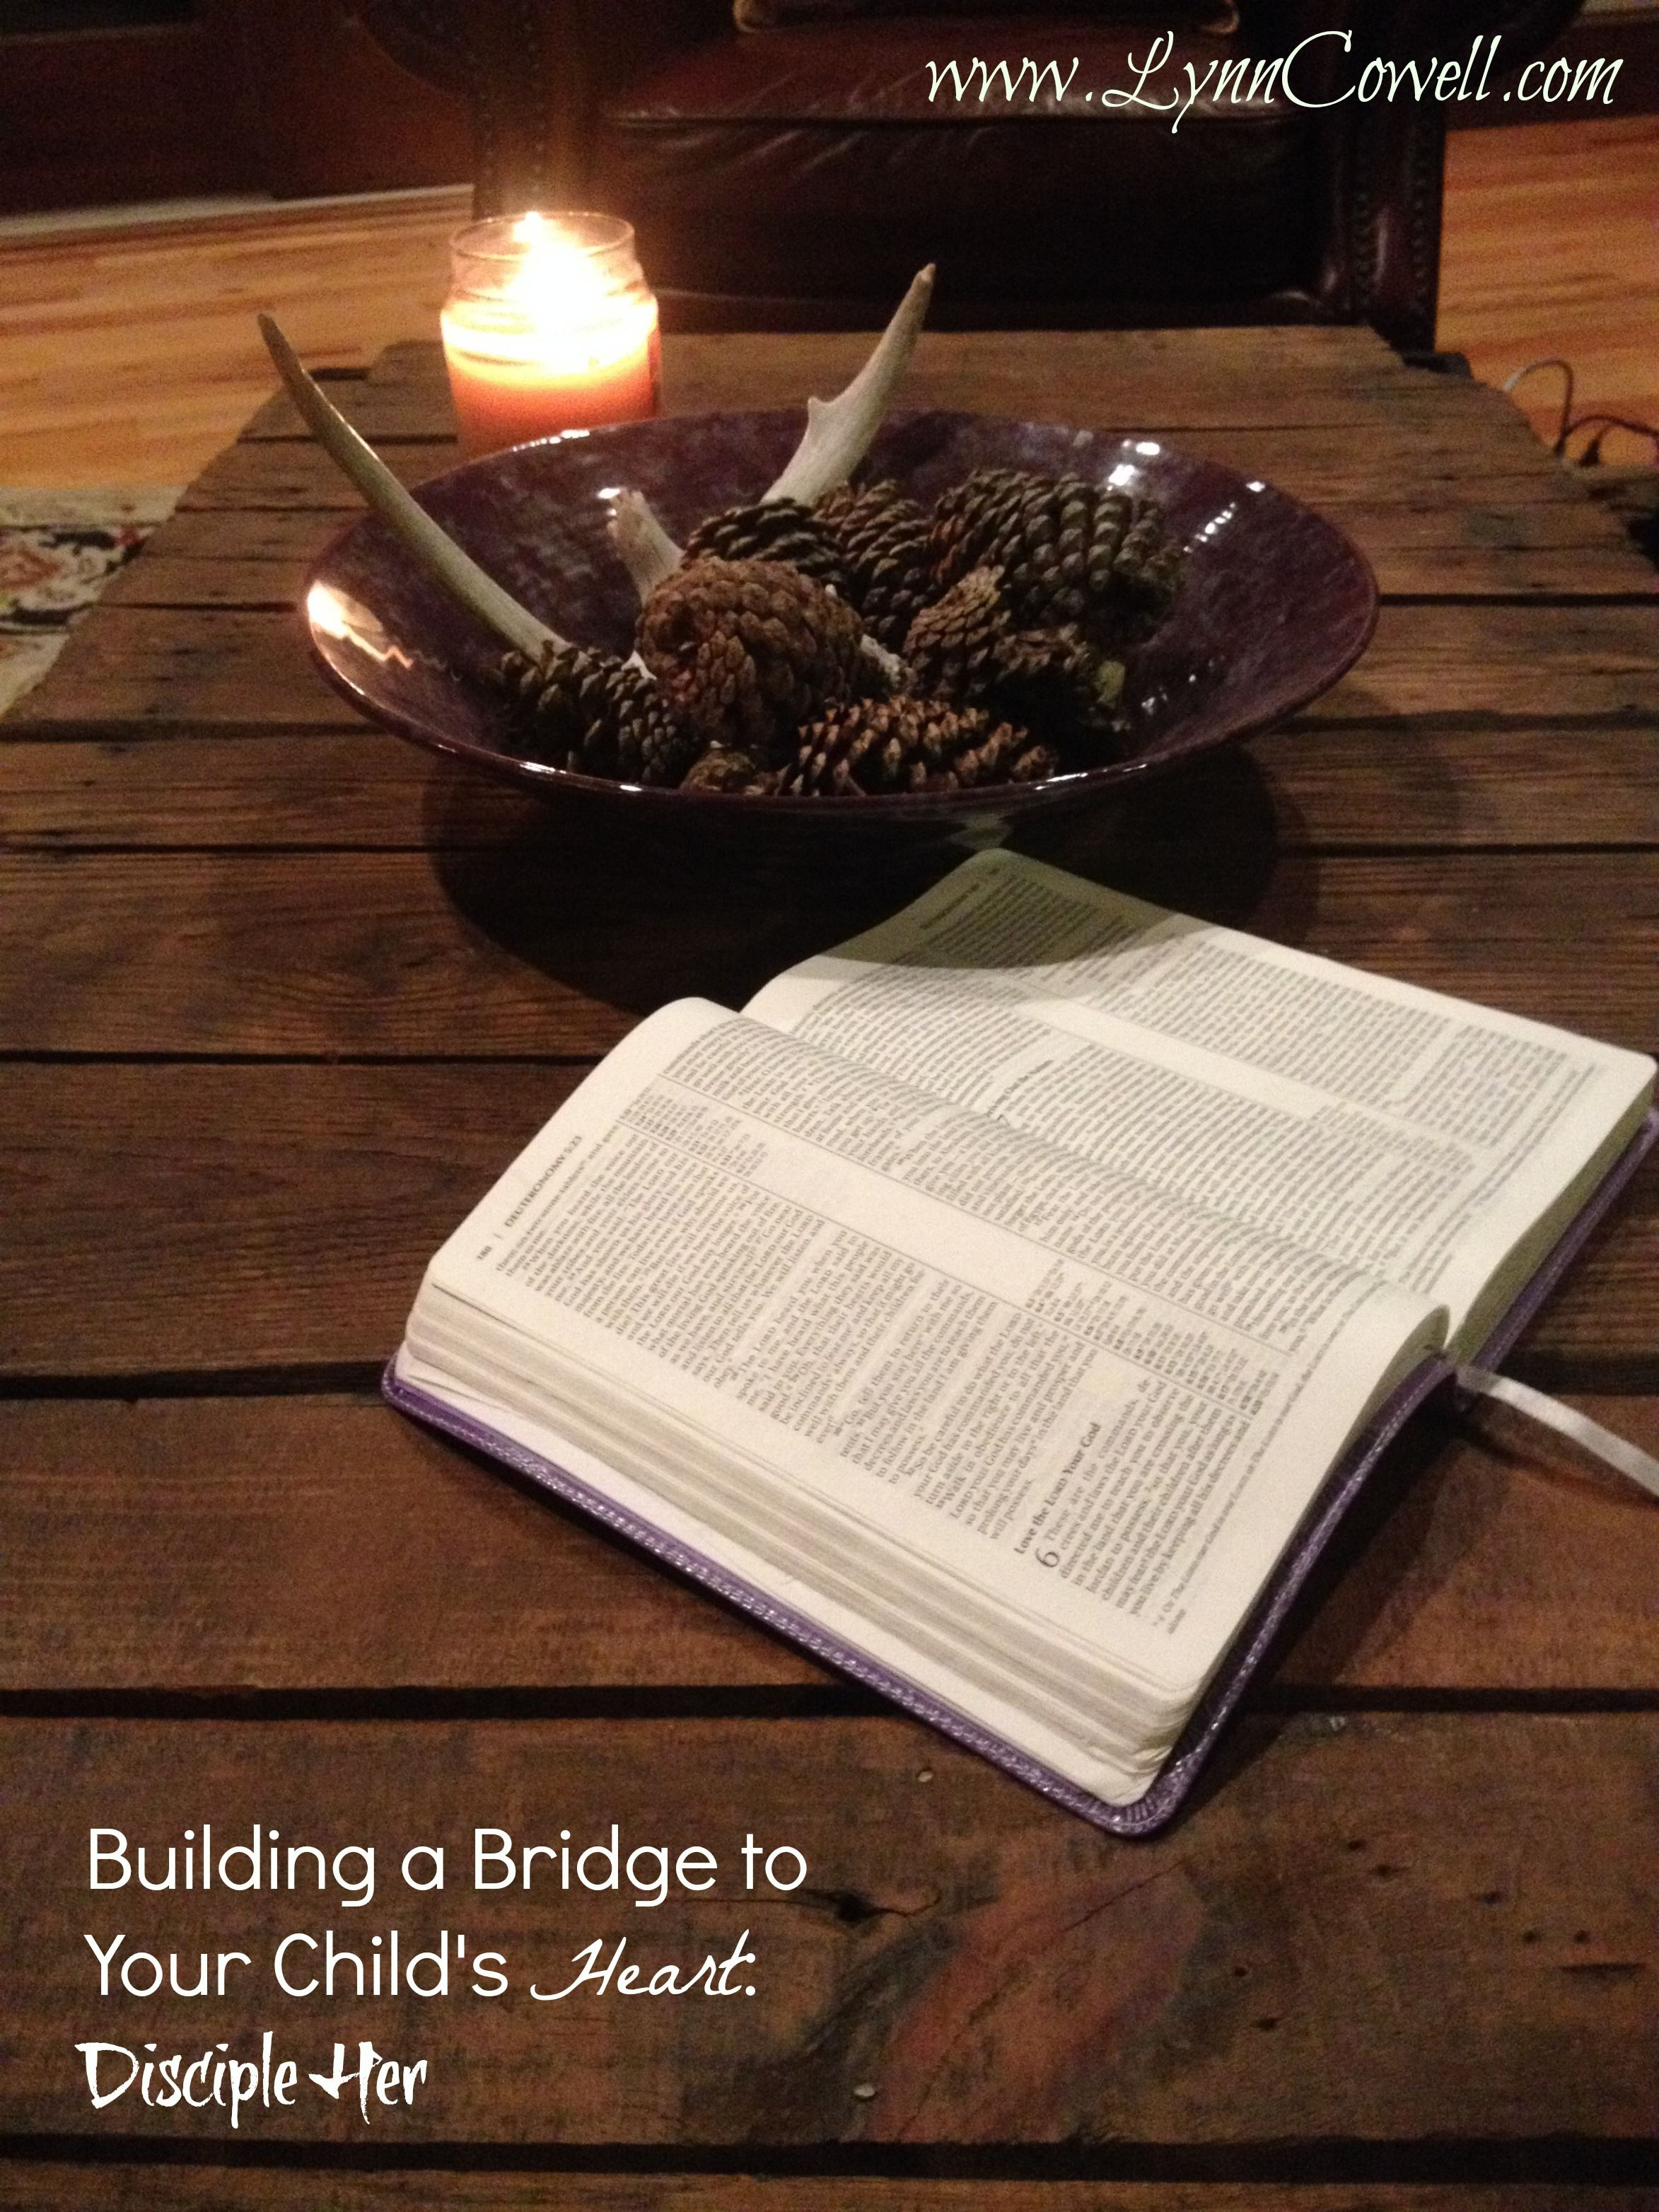 Building a Bridge to Your Child's Heart Disciple Her